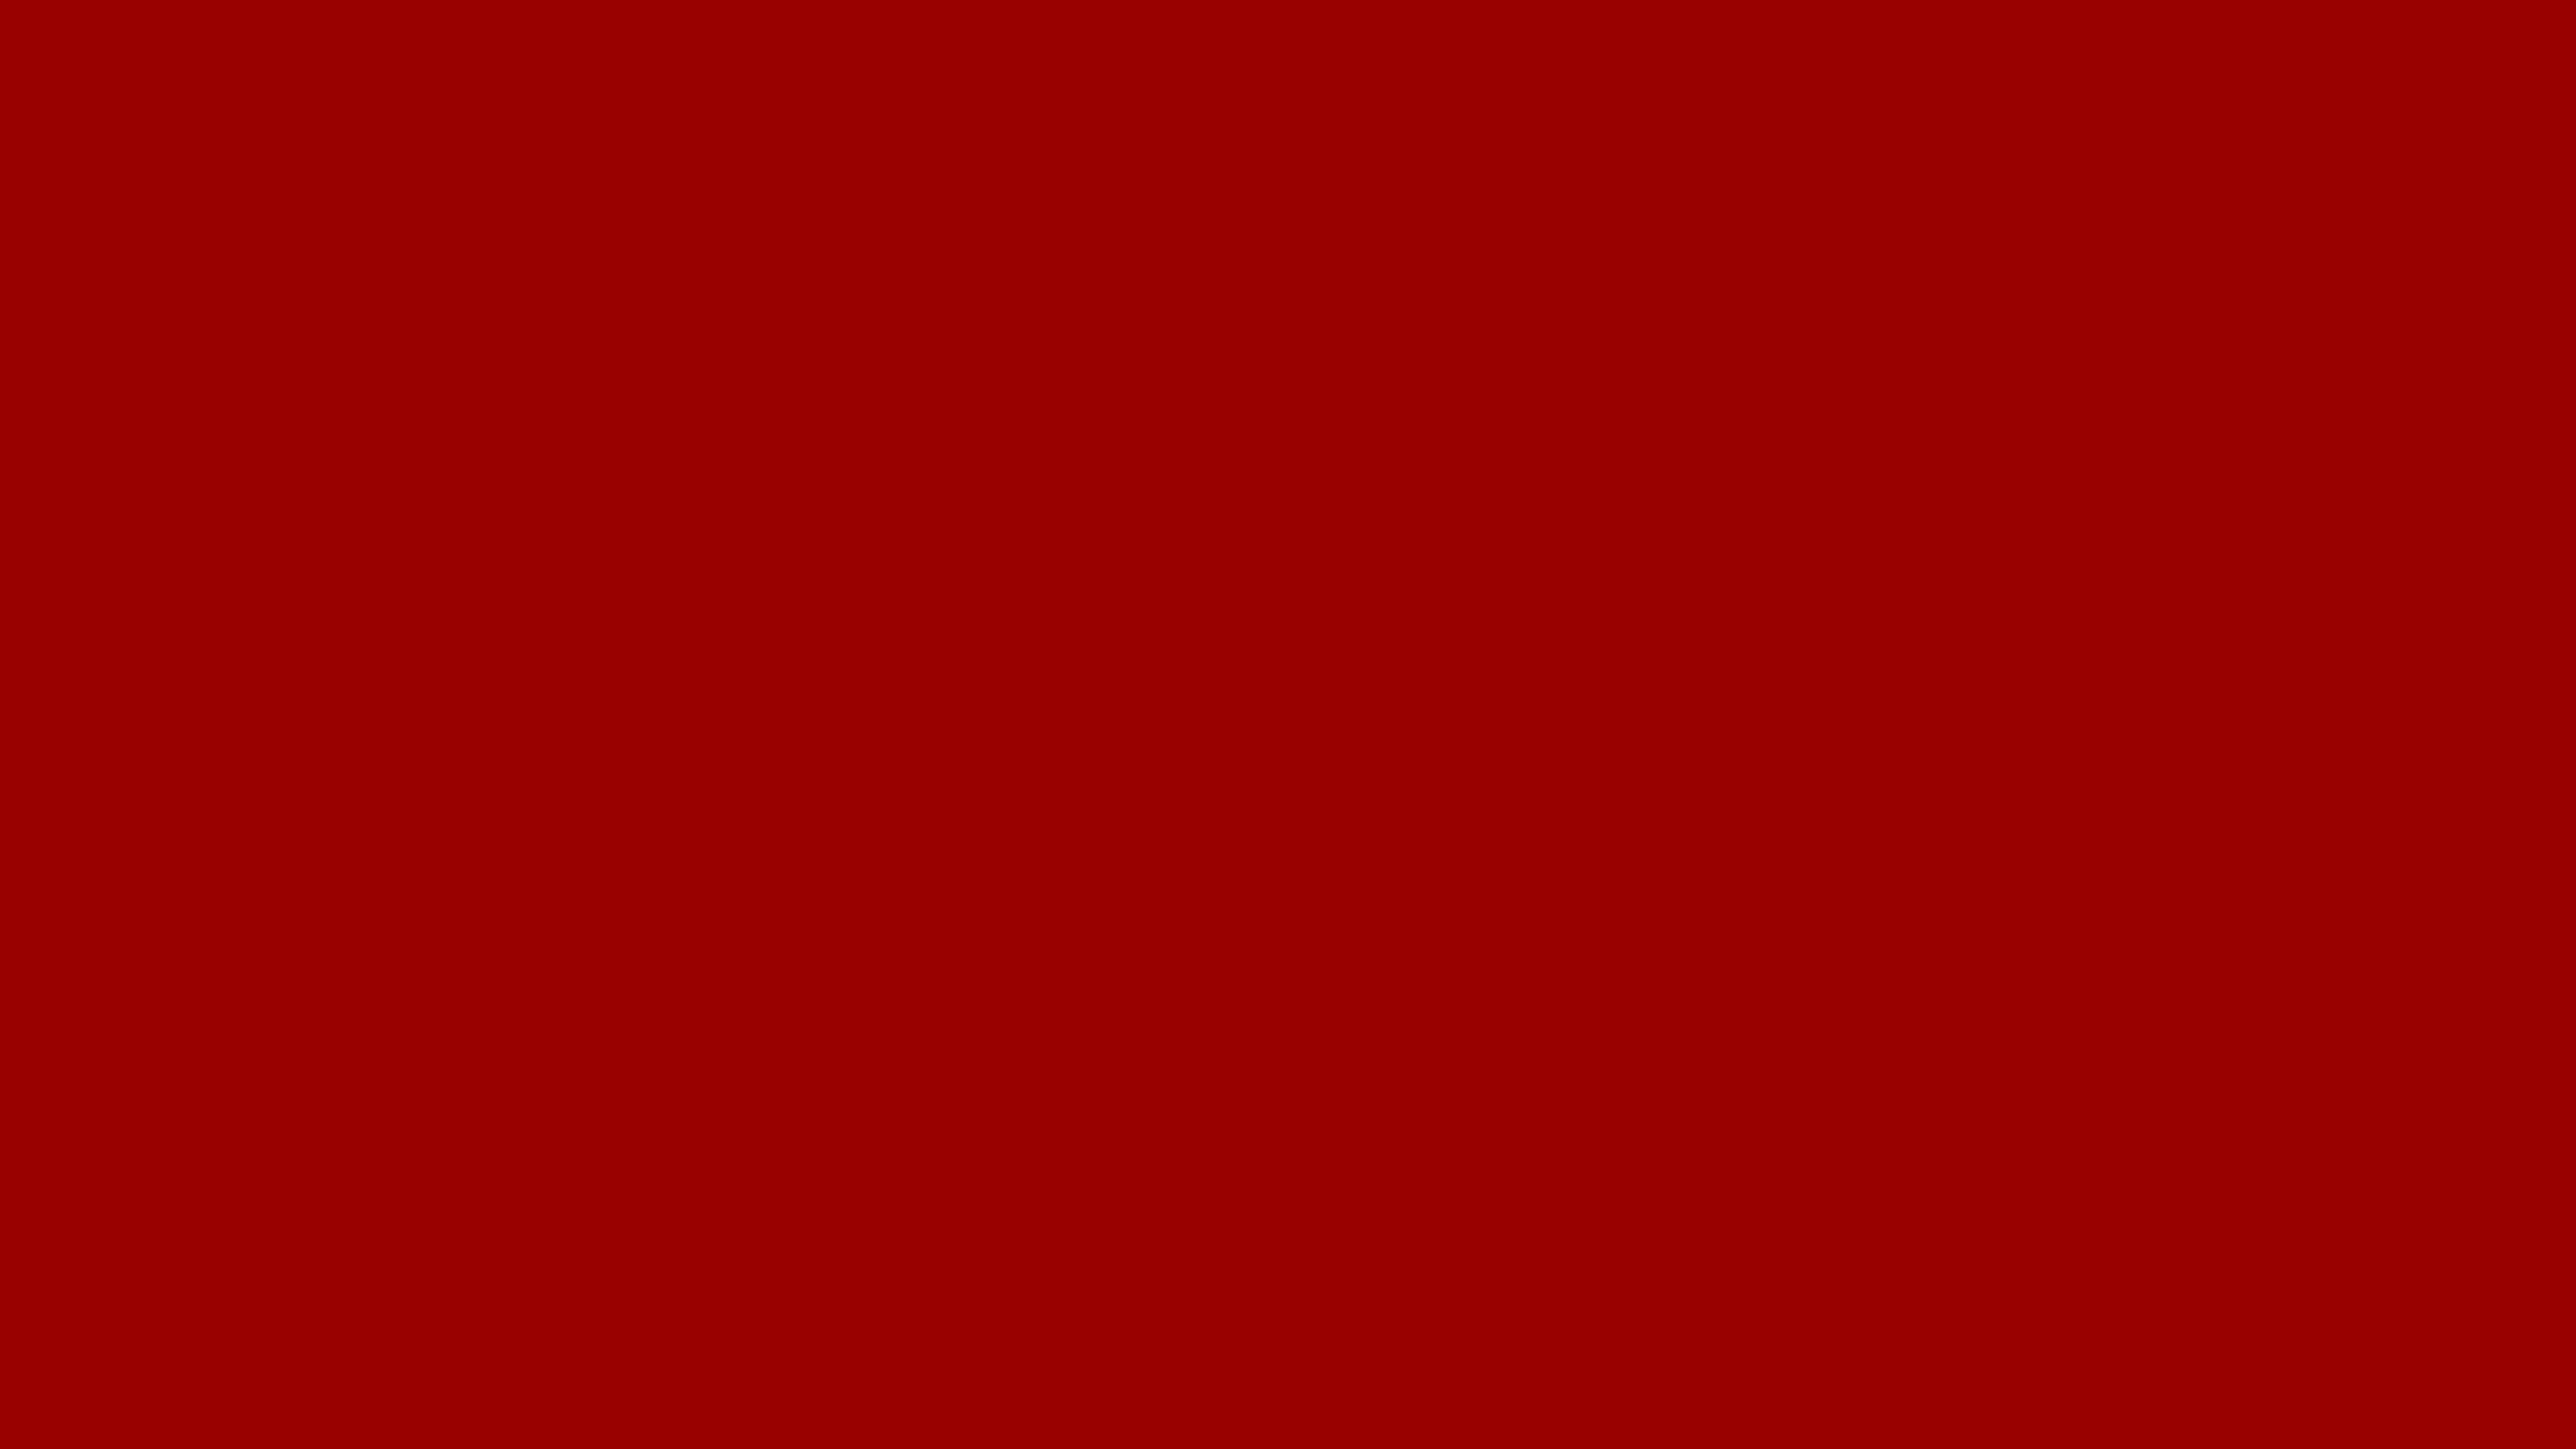 4096x2304 OU Crimson Red Solid Color Background